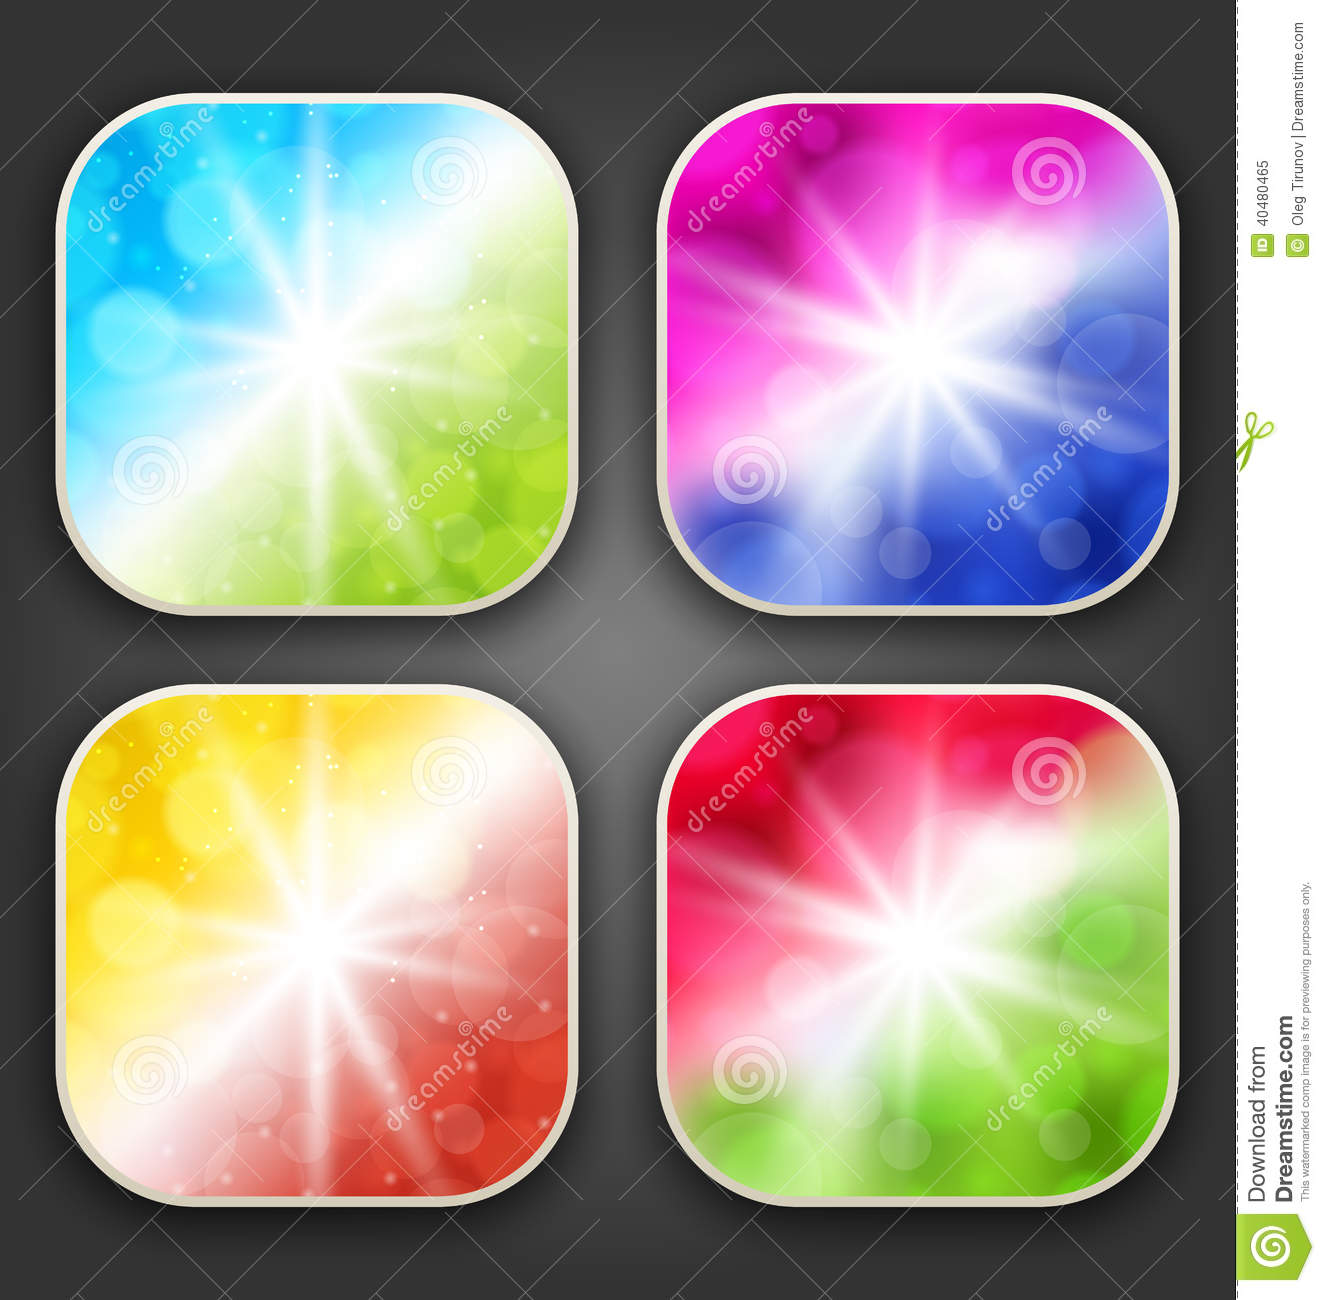 Abstract Backgrounds With For The App Icons Stock Vector